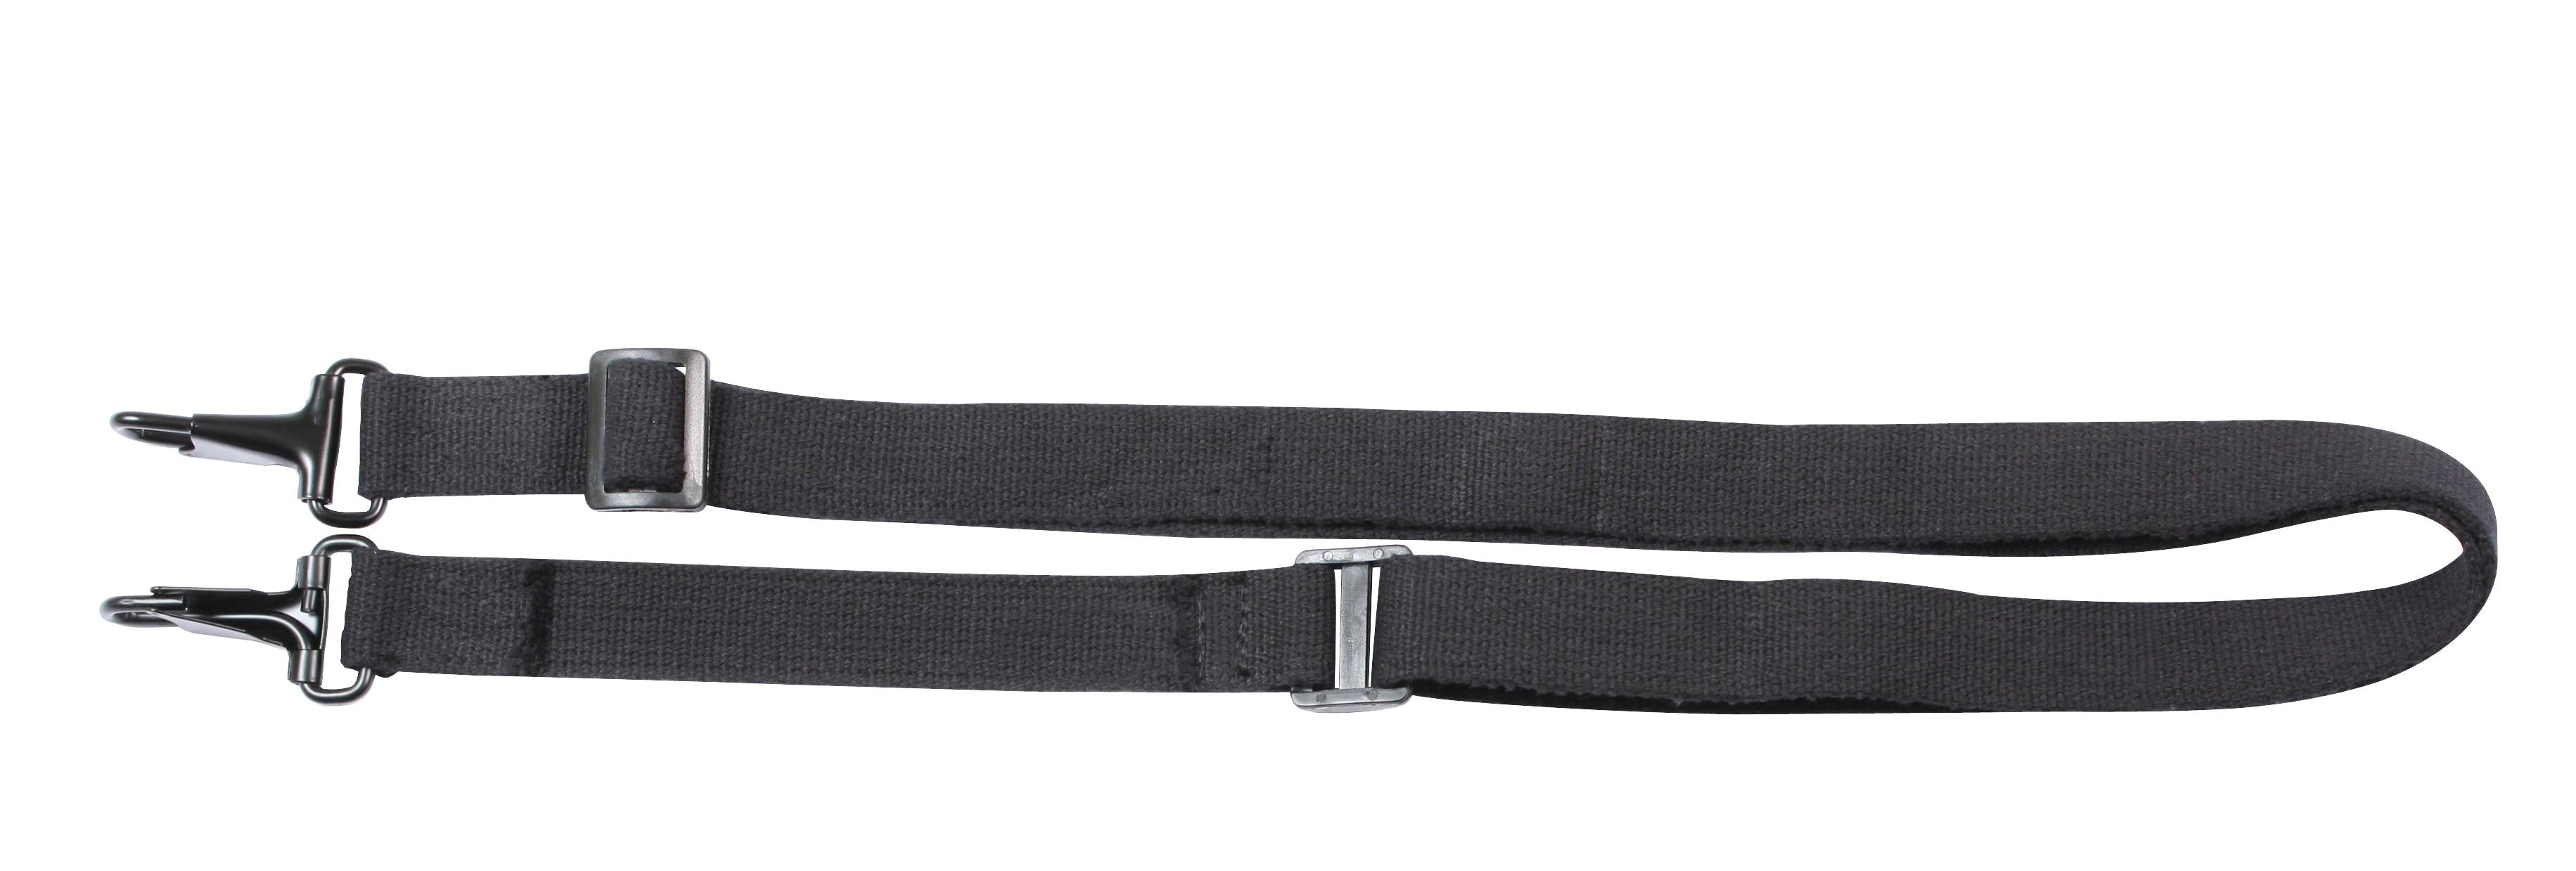 Rothco Canvas Shoulder Bag Strap - Black